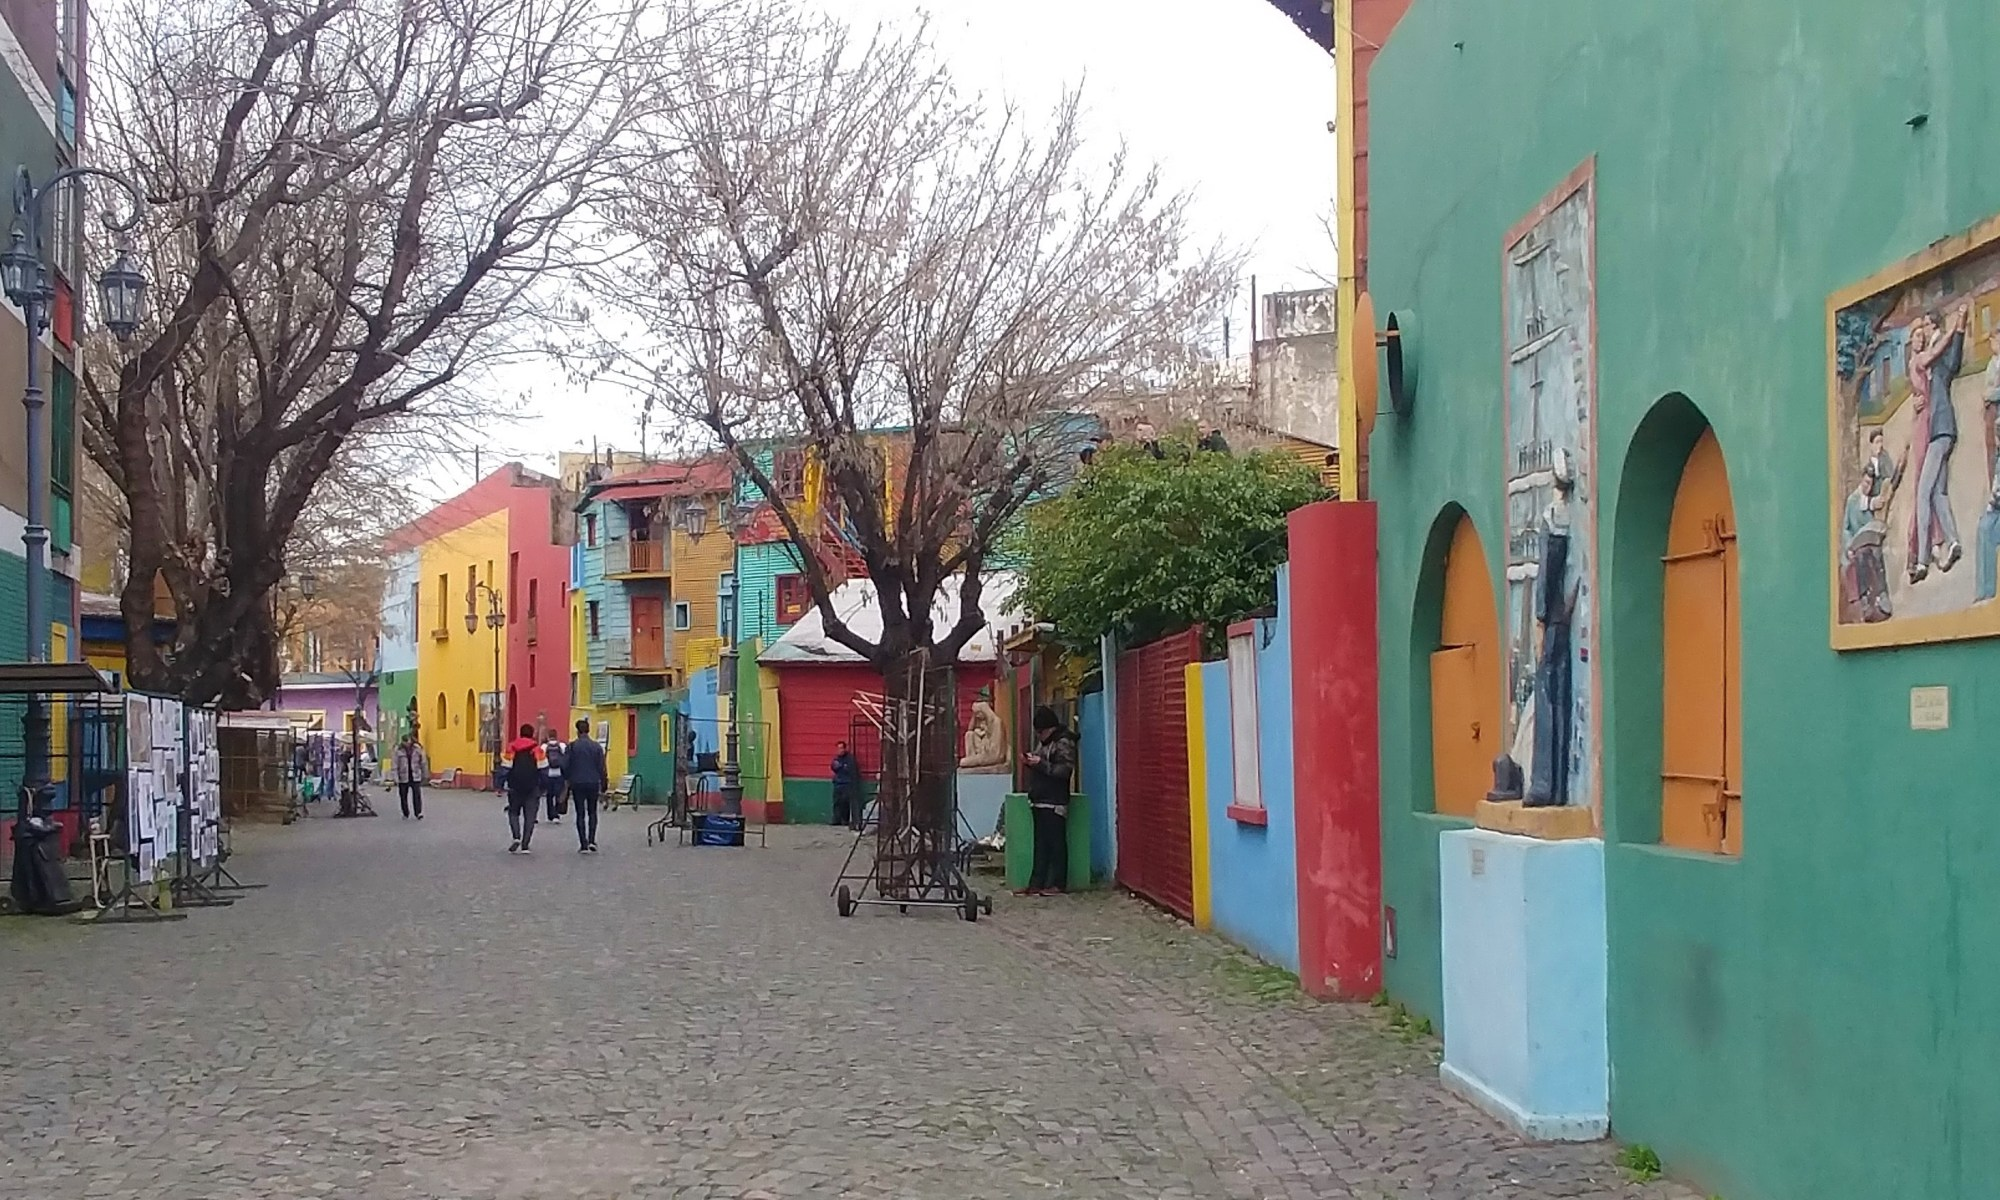 Buenos Aires, Argentina – September 11, 2019: Colorful streets in Boca neighbourhood.